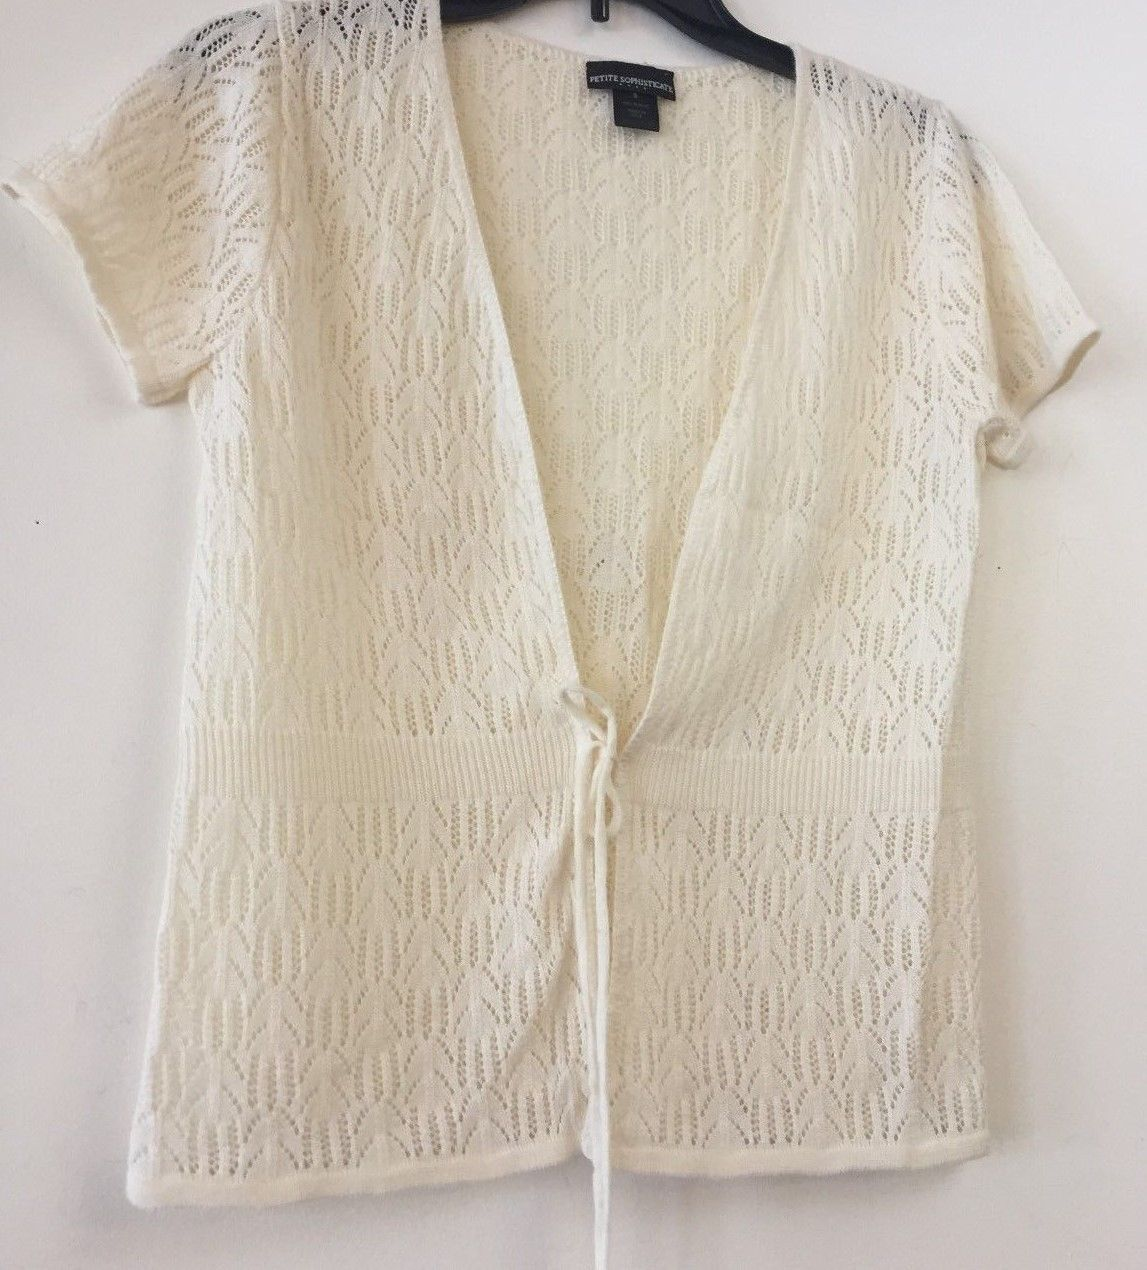 77829d67f0 PETITE SOPHISTICATE LIGHTWEIGHT OPEN KNIT COVER-UP SWEATER~CREAM~SIZE  S~NICE -  6.37